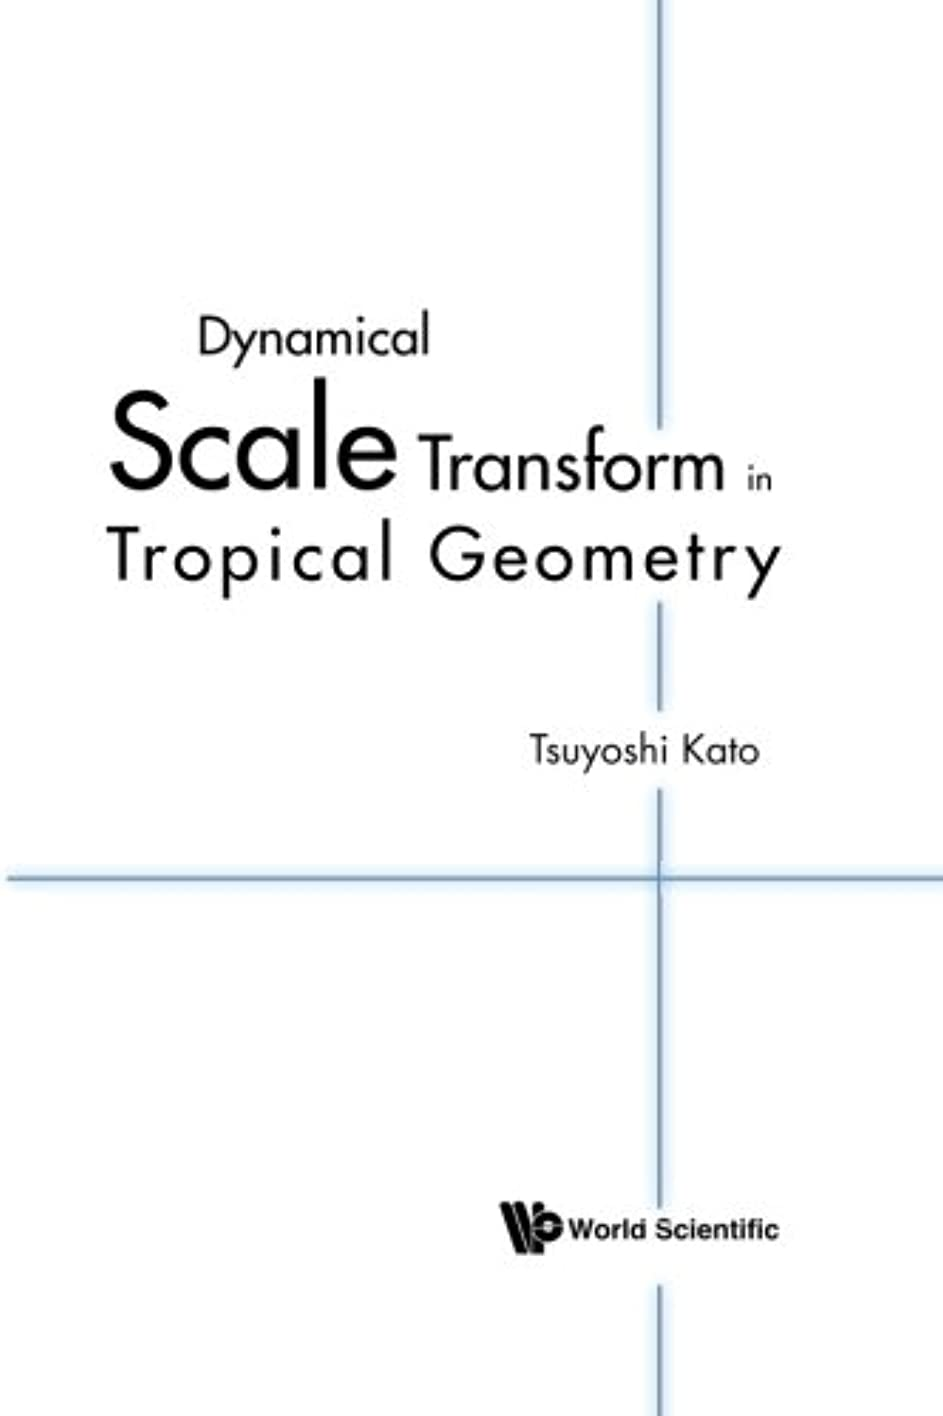 レポートを書くスパーク進行中Dynamical Scale Transform In Tropical Geometry